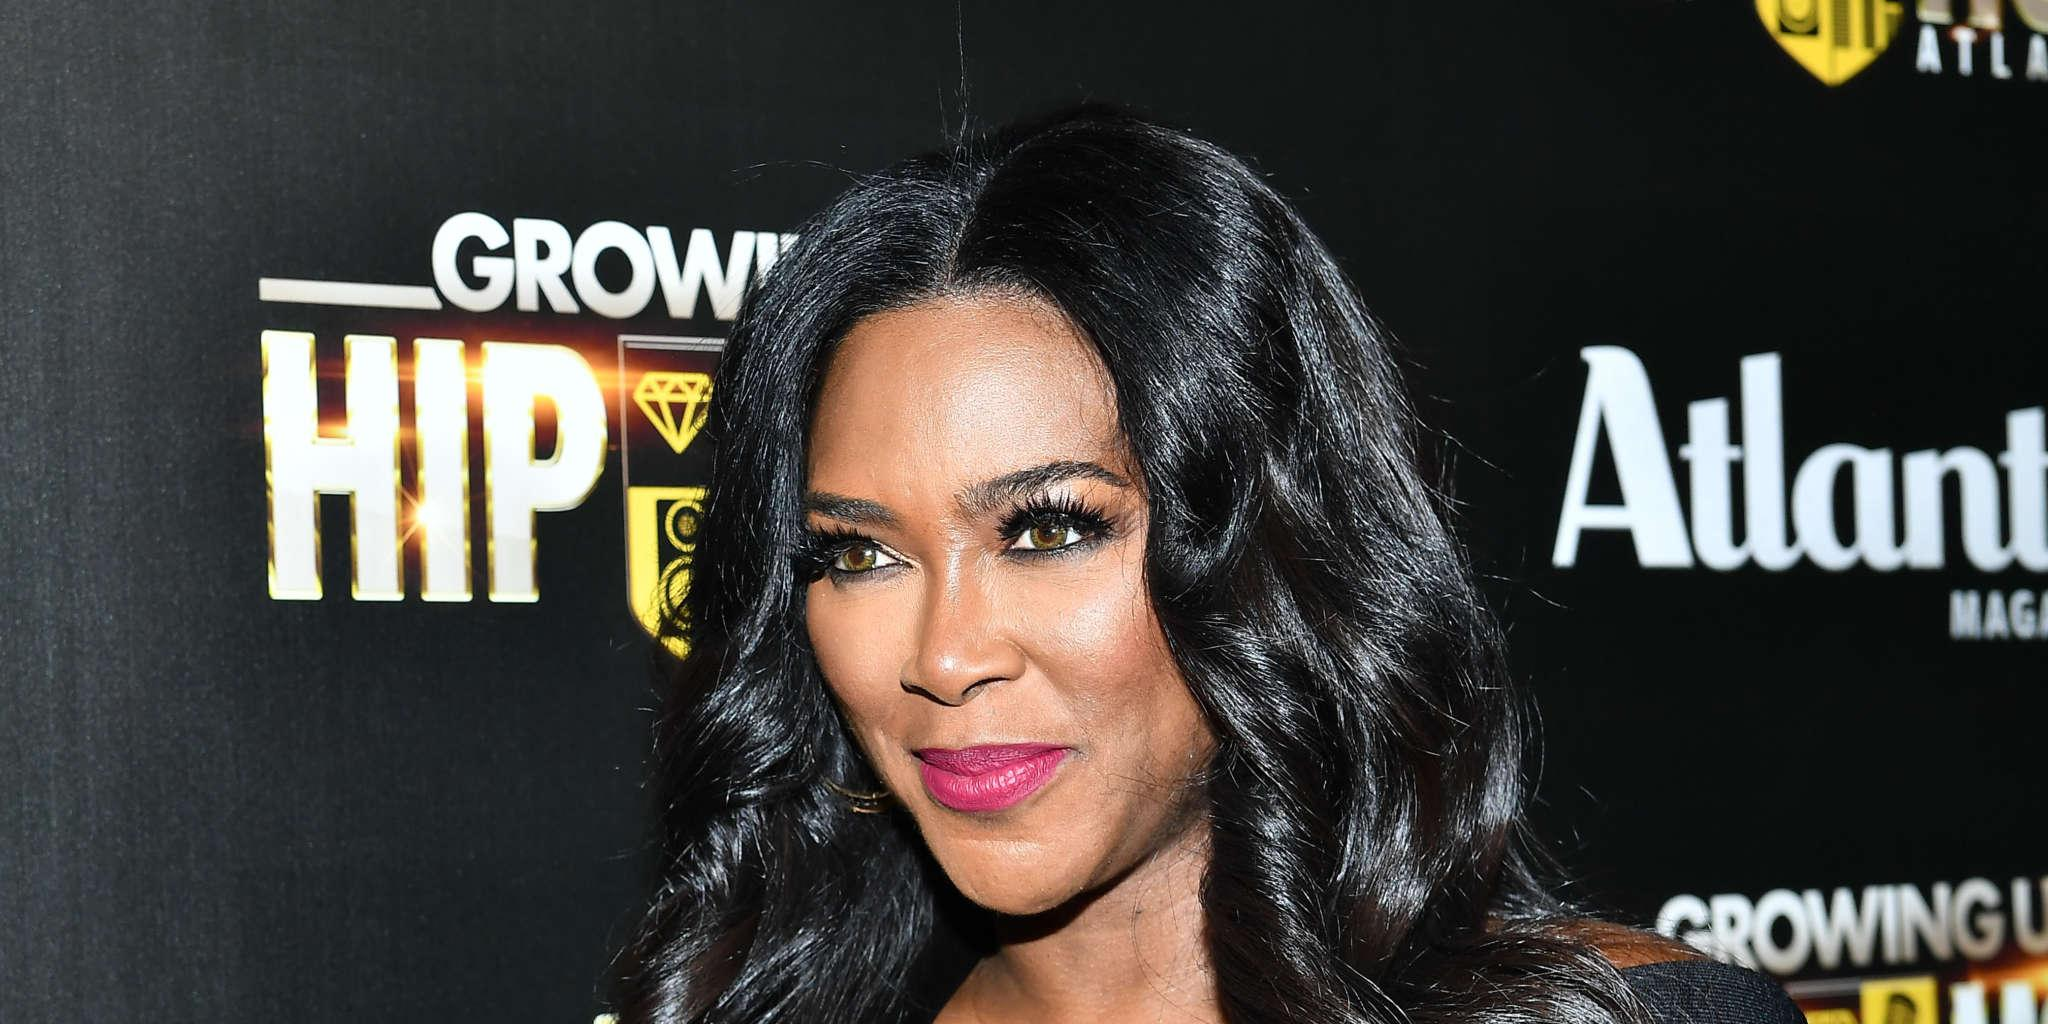 Kenya Moore Reveals An Infertility-Related Seminar For People Who Need Financial Assistance With IVF